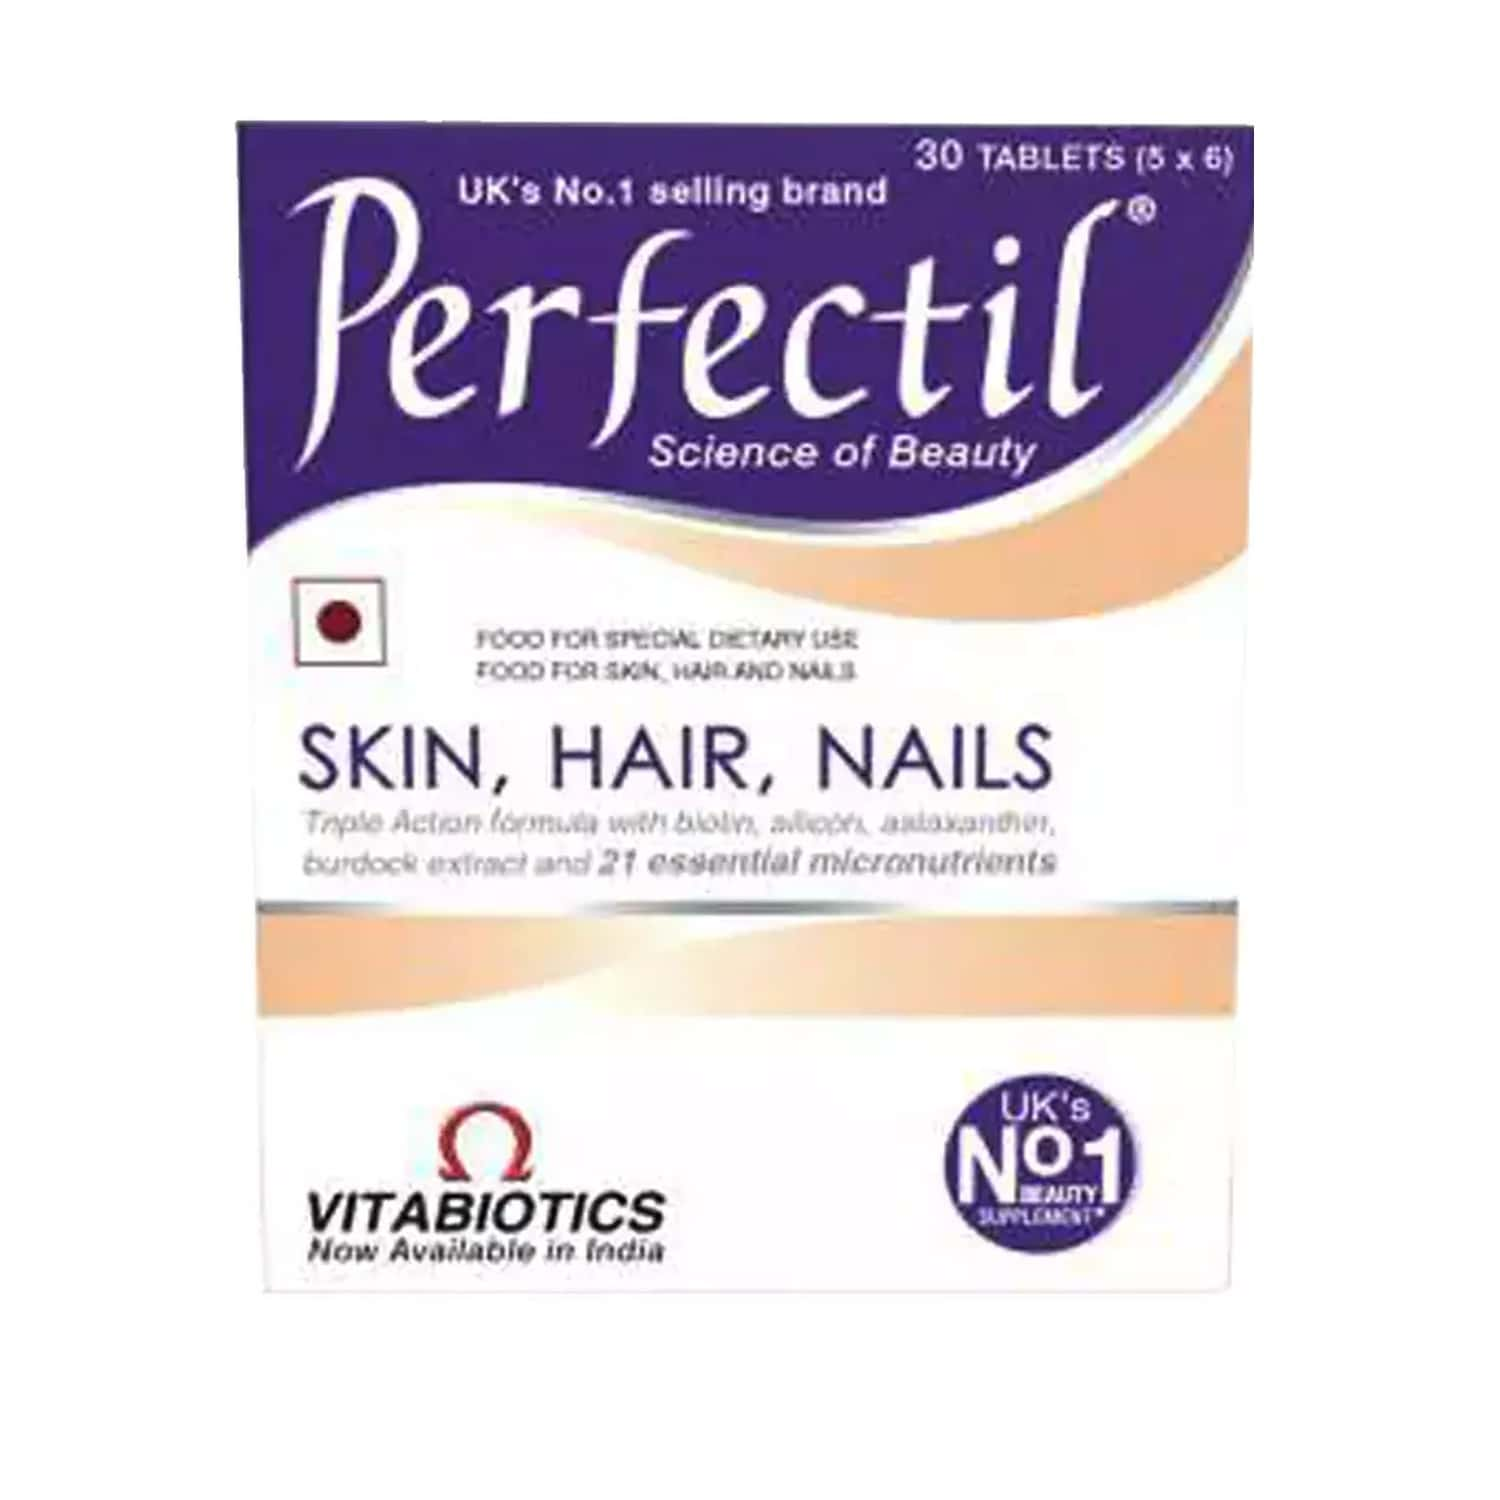 Perfectil - Skin, Hair, Nail Supplements(20 Micronutrients Including Biotin) With Wellman 30 Tablet Free